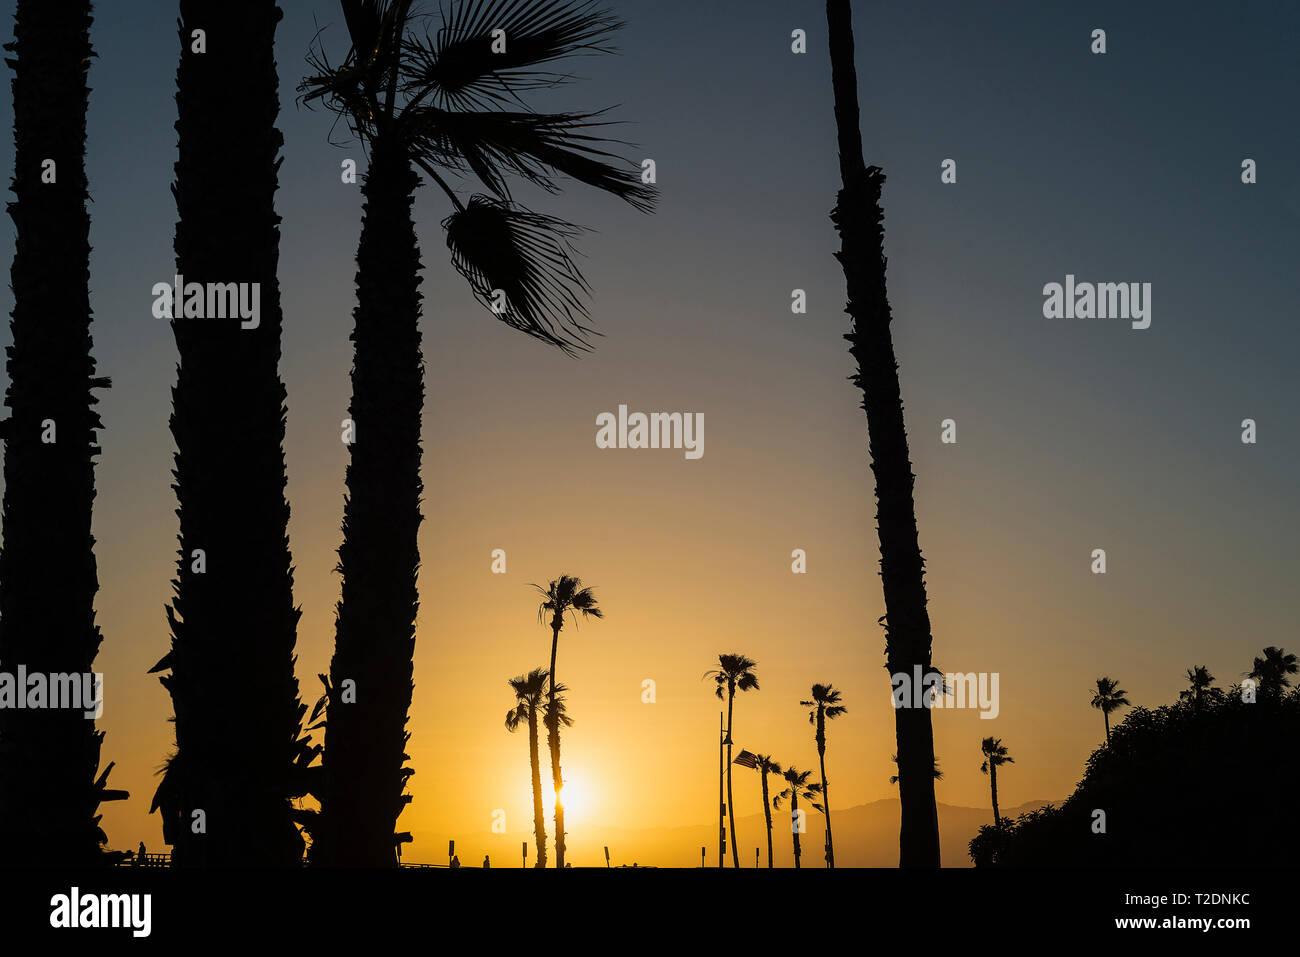 Palm trees lining the Venice Boardwalk in Los Angeles, California. Stock Photo